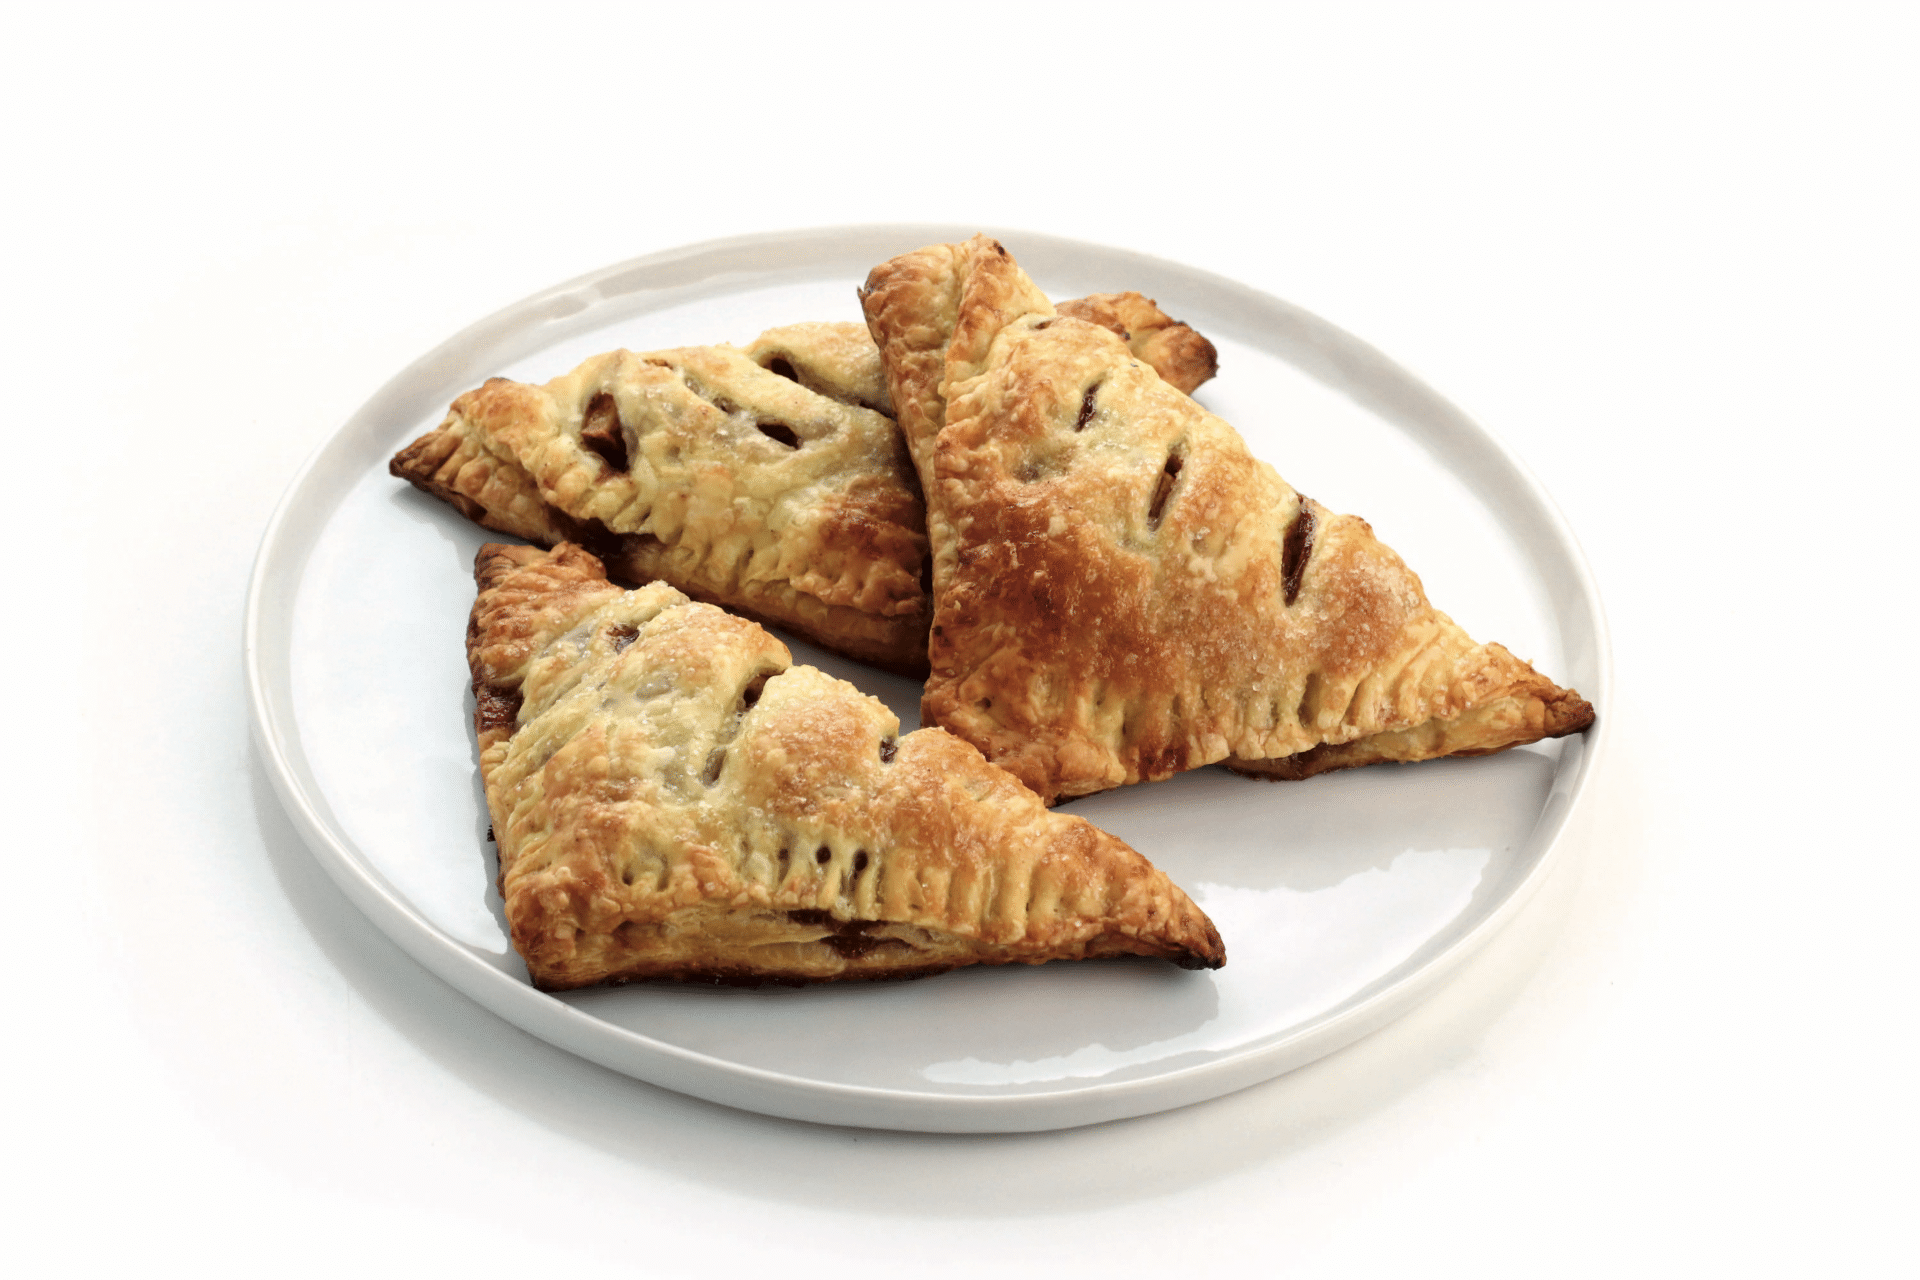 plate of apple turnovers on white background